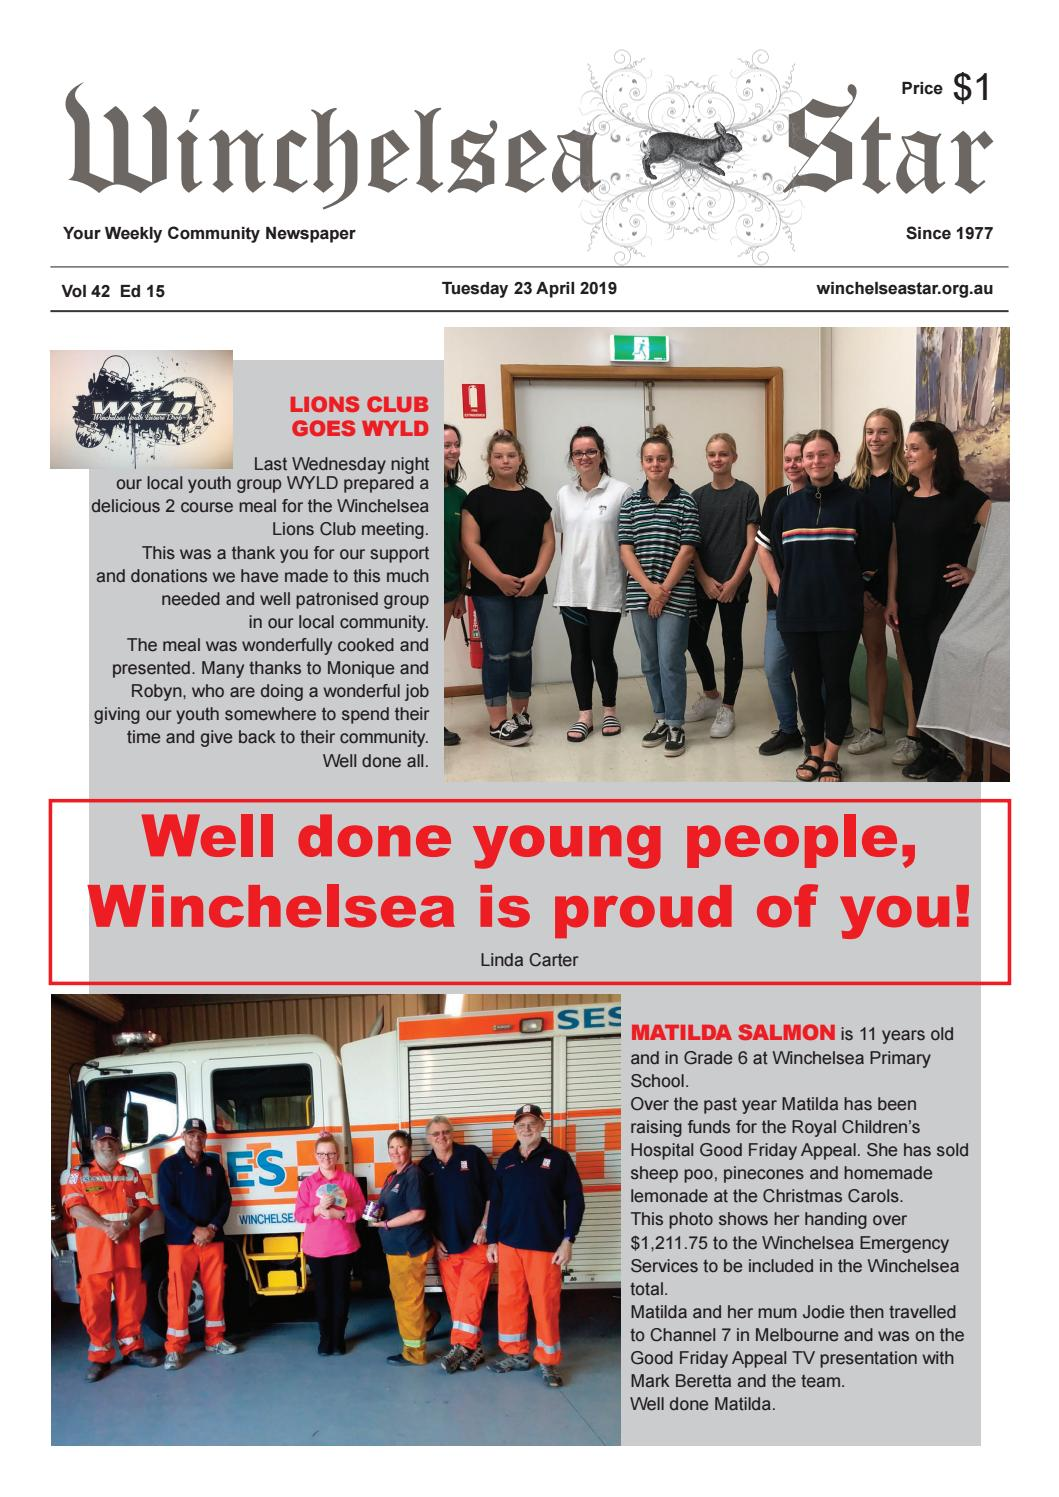 Winchelsea Star 23 April 2019 Vol 42 Ed 15 by The Winchelsea